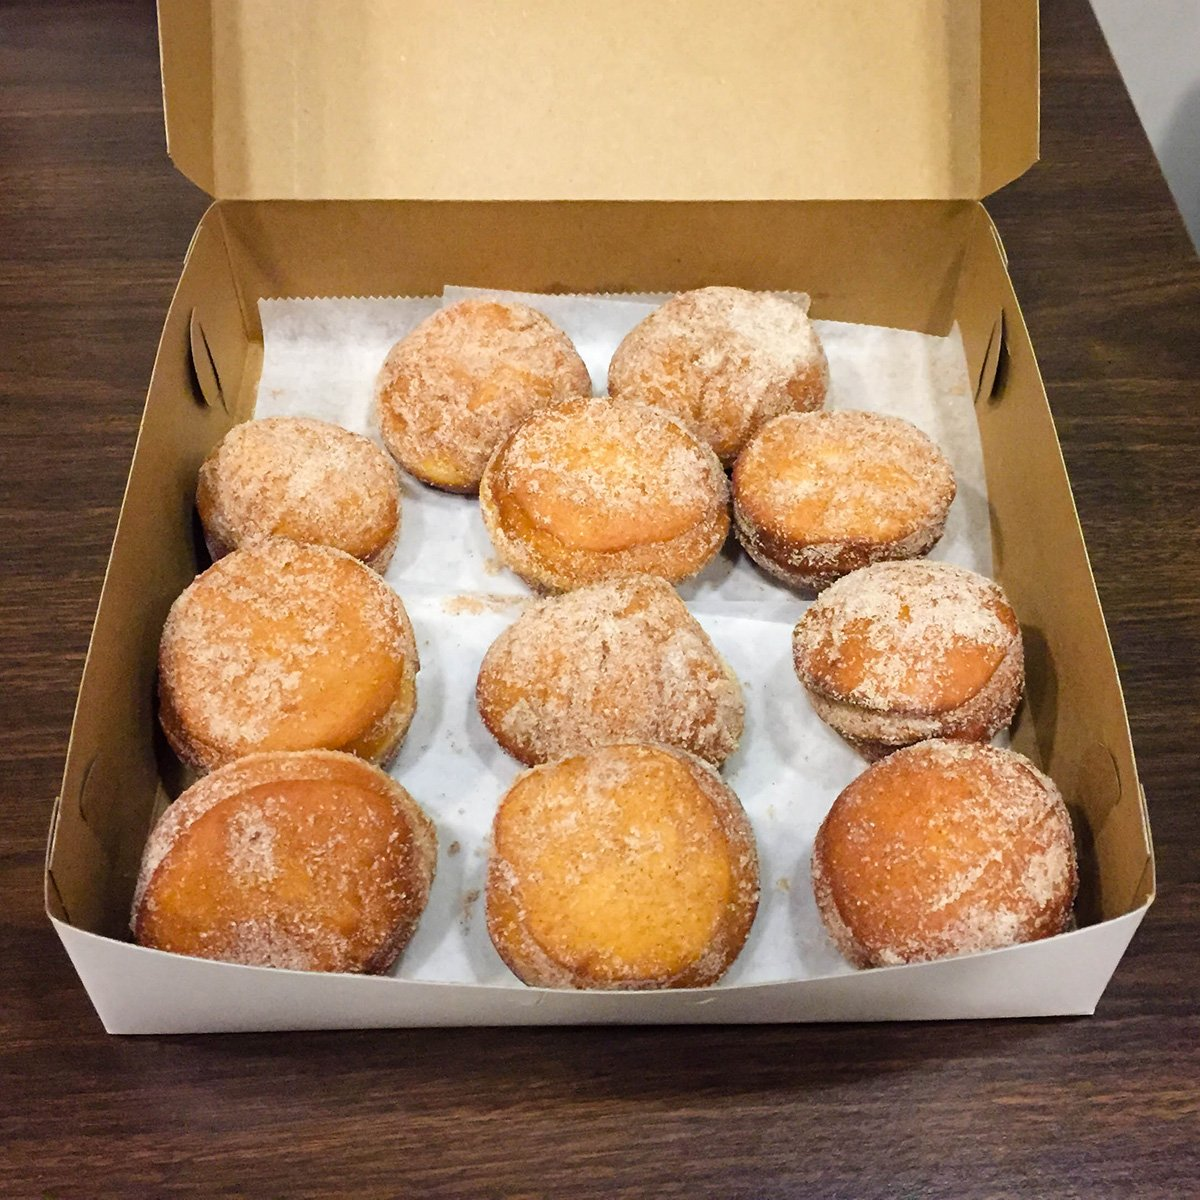 Happy Fat Tuesday! Here in PA we&#39;re celebrating #FastnachtDay with these tasty Pennsylvania Dutch treats. #PAproud<br>http://pic.twitter.com/fcJwt6G84G